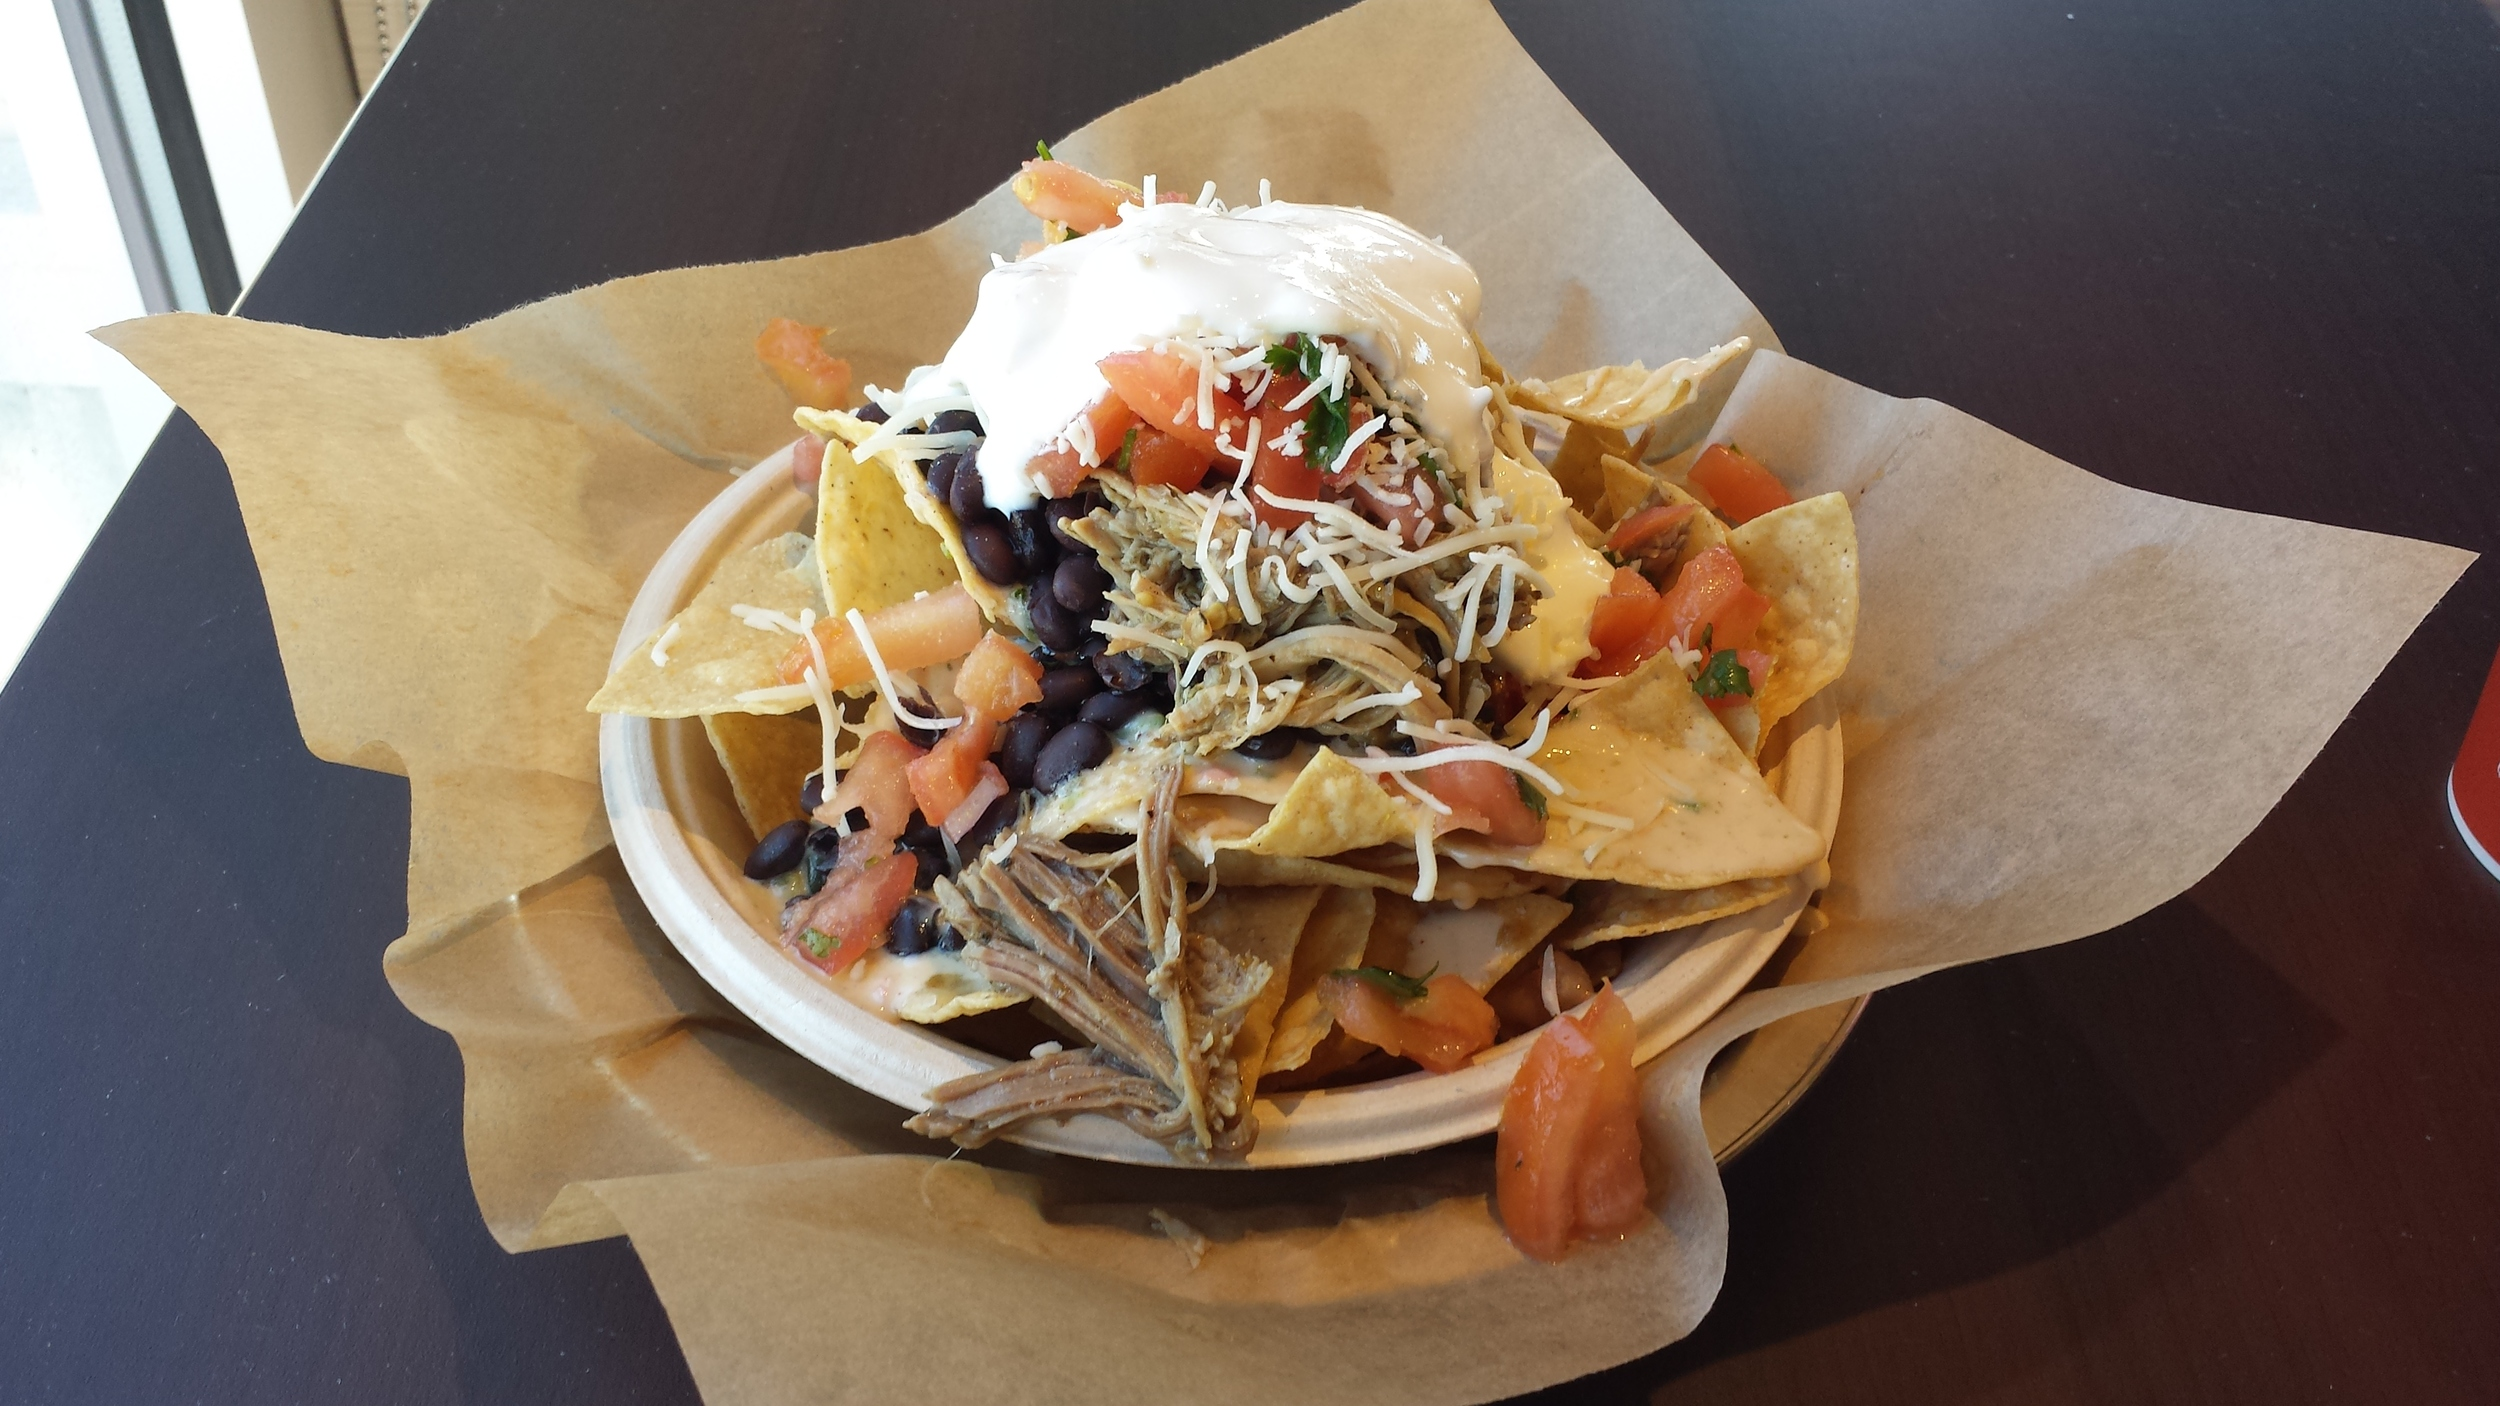 Handmade Tortilla Chips, Black Beans, Pulled Pork, 3-Cheese Queso, Pico de Gallo, Shredded Cheese, Sour Cream